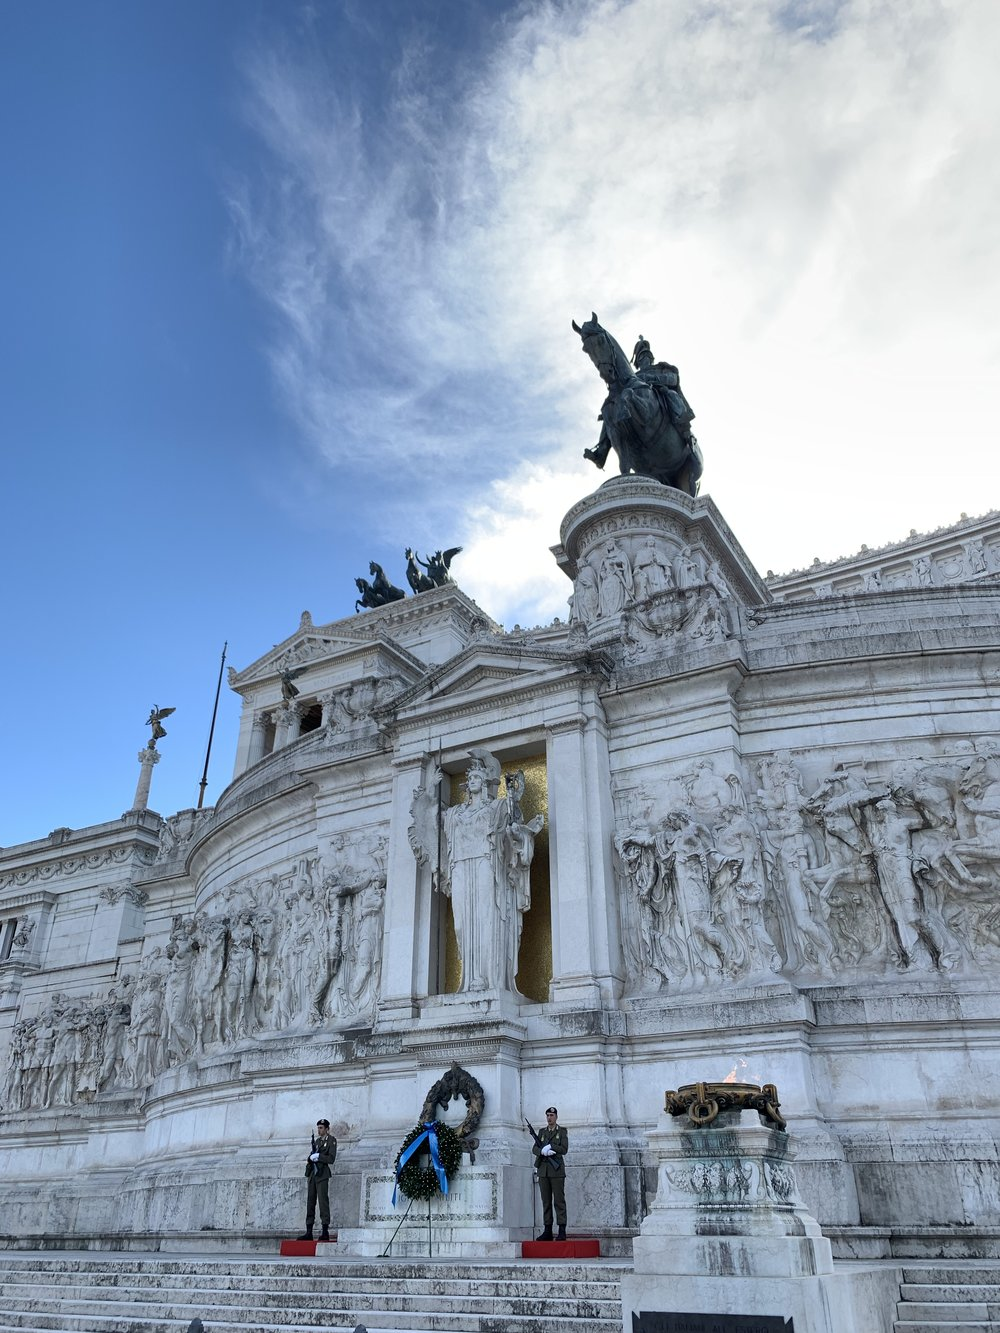 People who know about such things might hate the architecture, but I love the elaborate Monumento Nazionale a Vittorio Emanuele II, which houses the tomb of the unknown solider